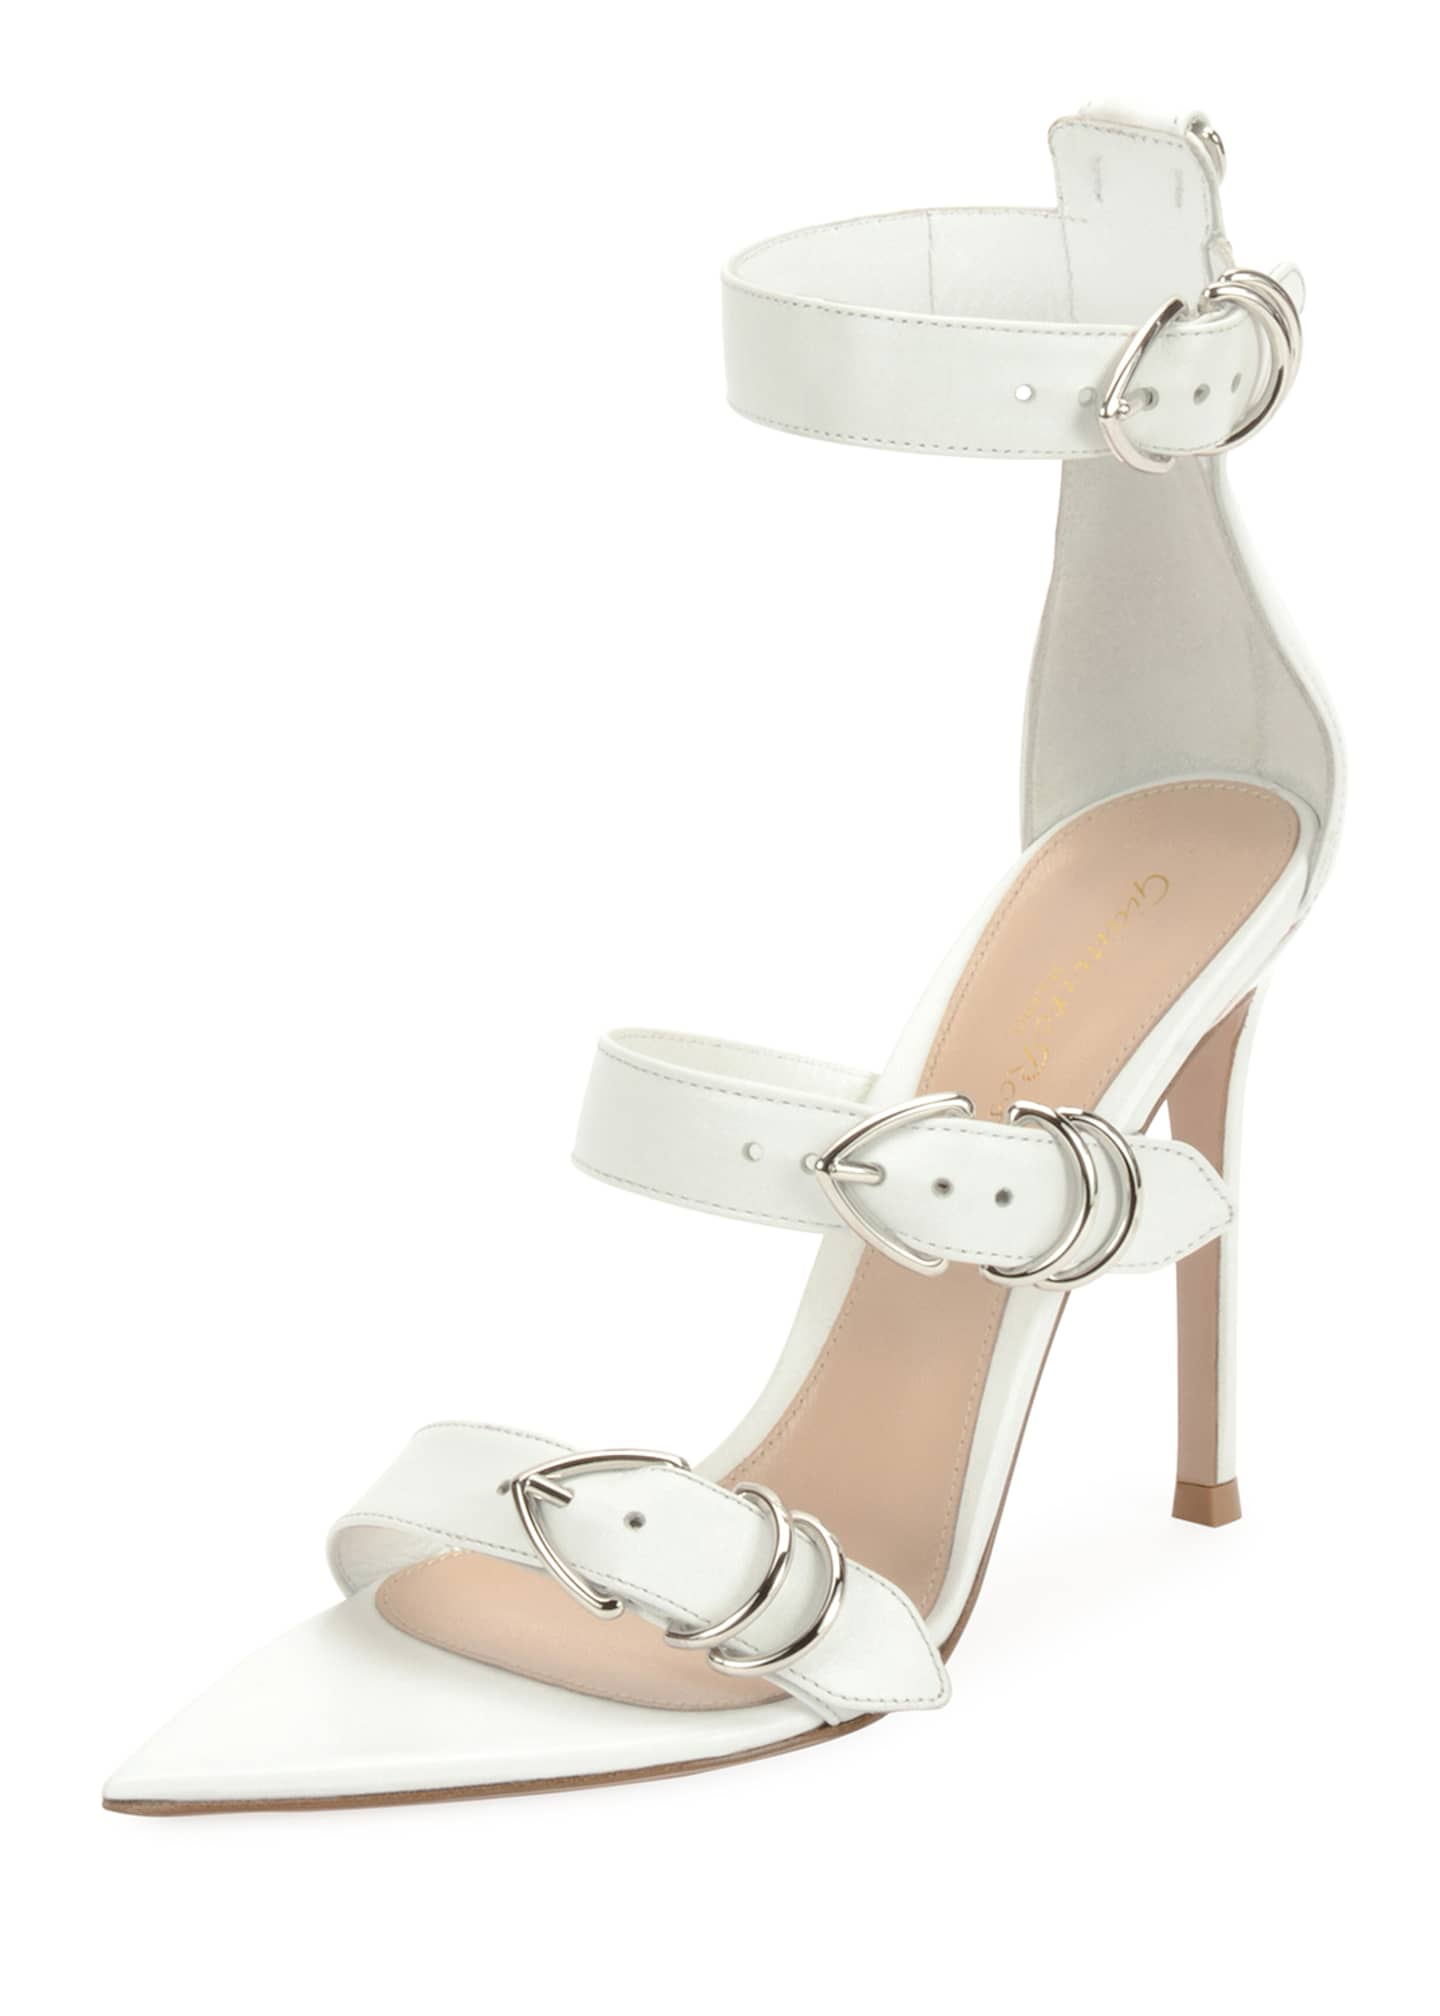 Gianvito Rossi Leather Belted High Sandals